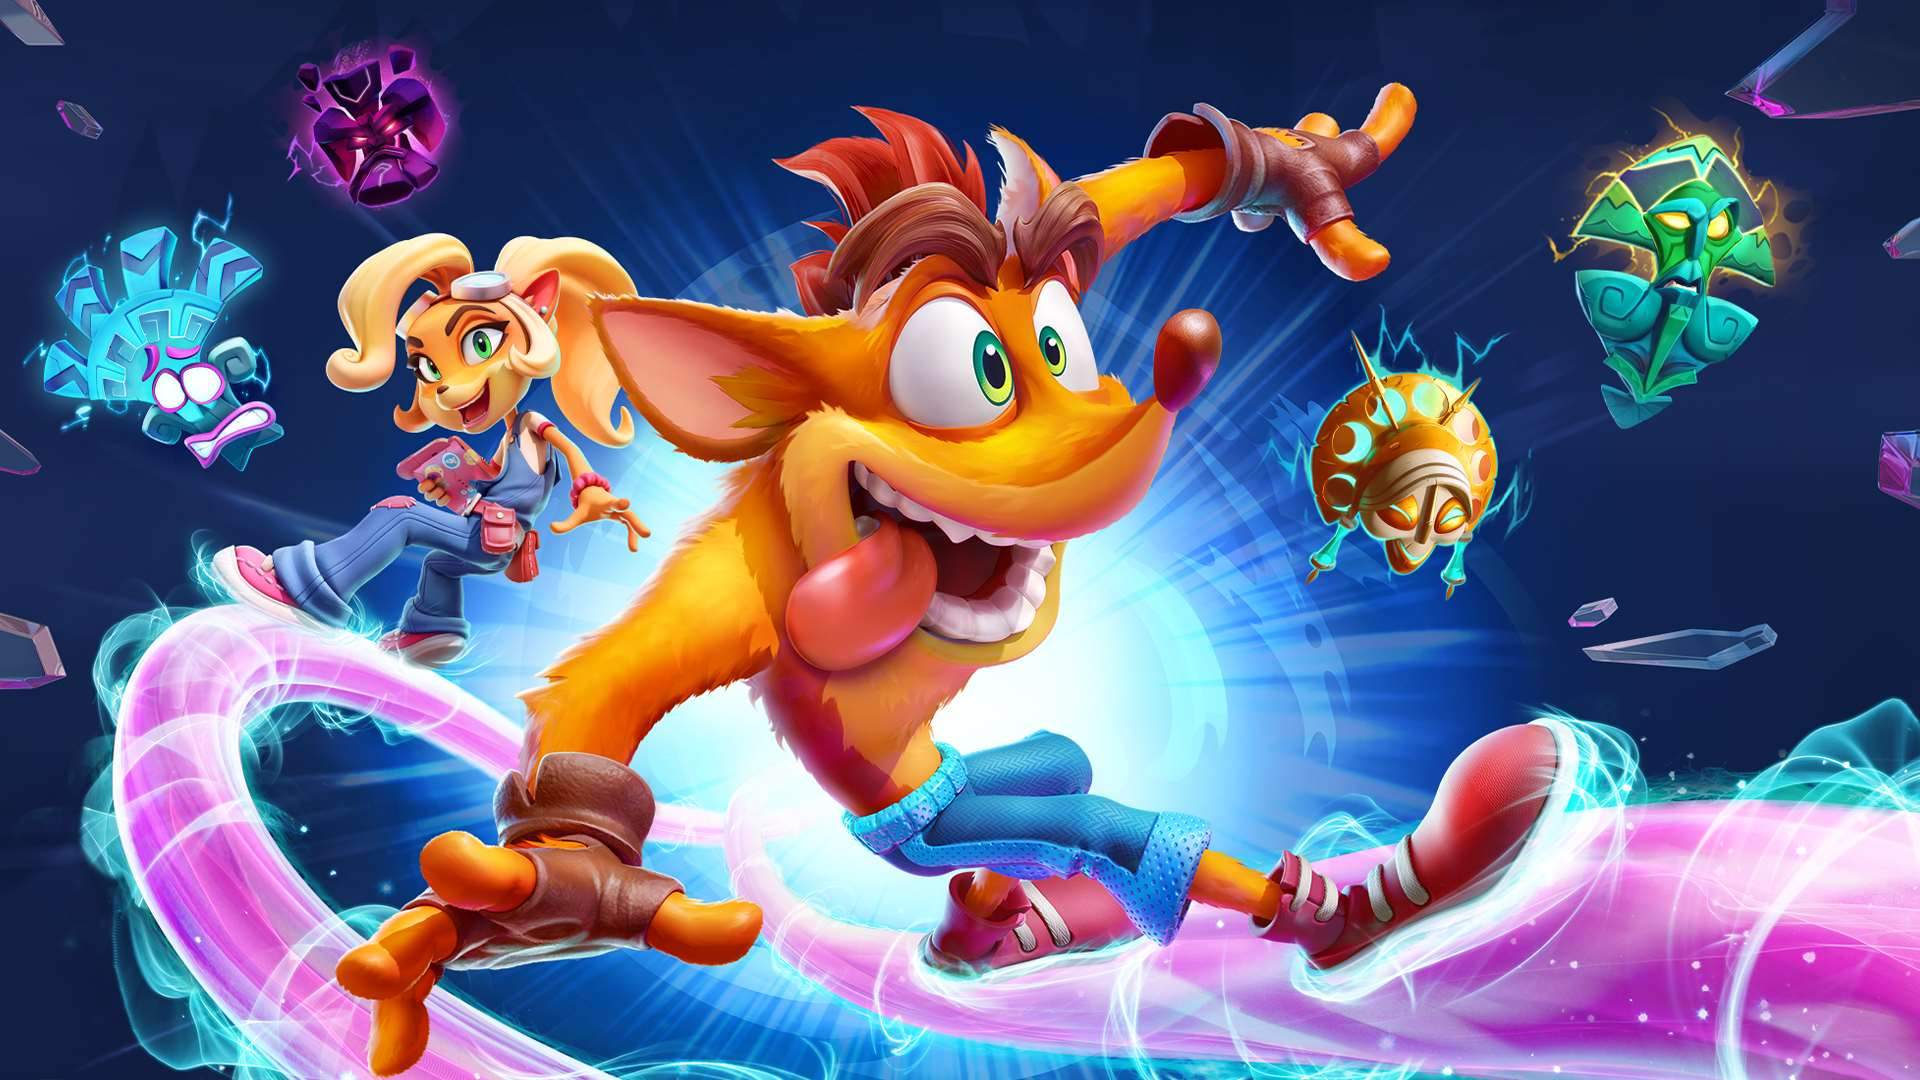 Crash Bandicoot 4: It's About Time Switch Edition Possibly Leaked